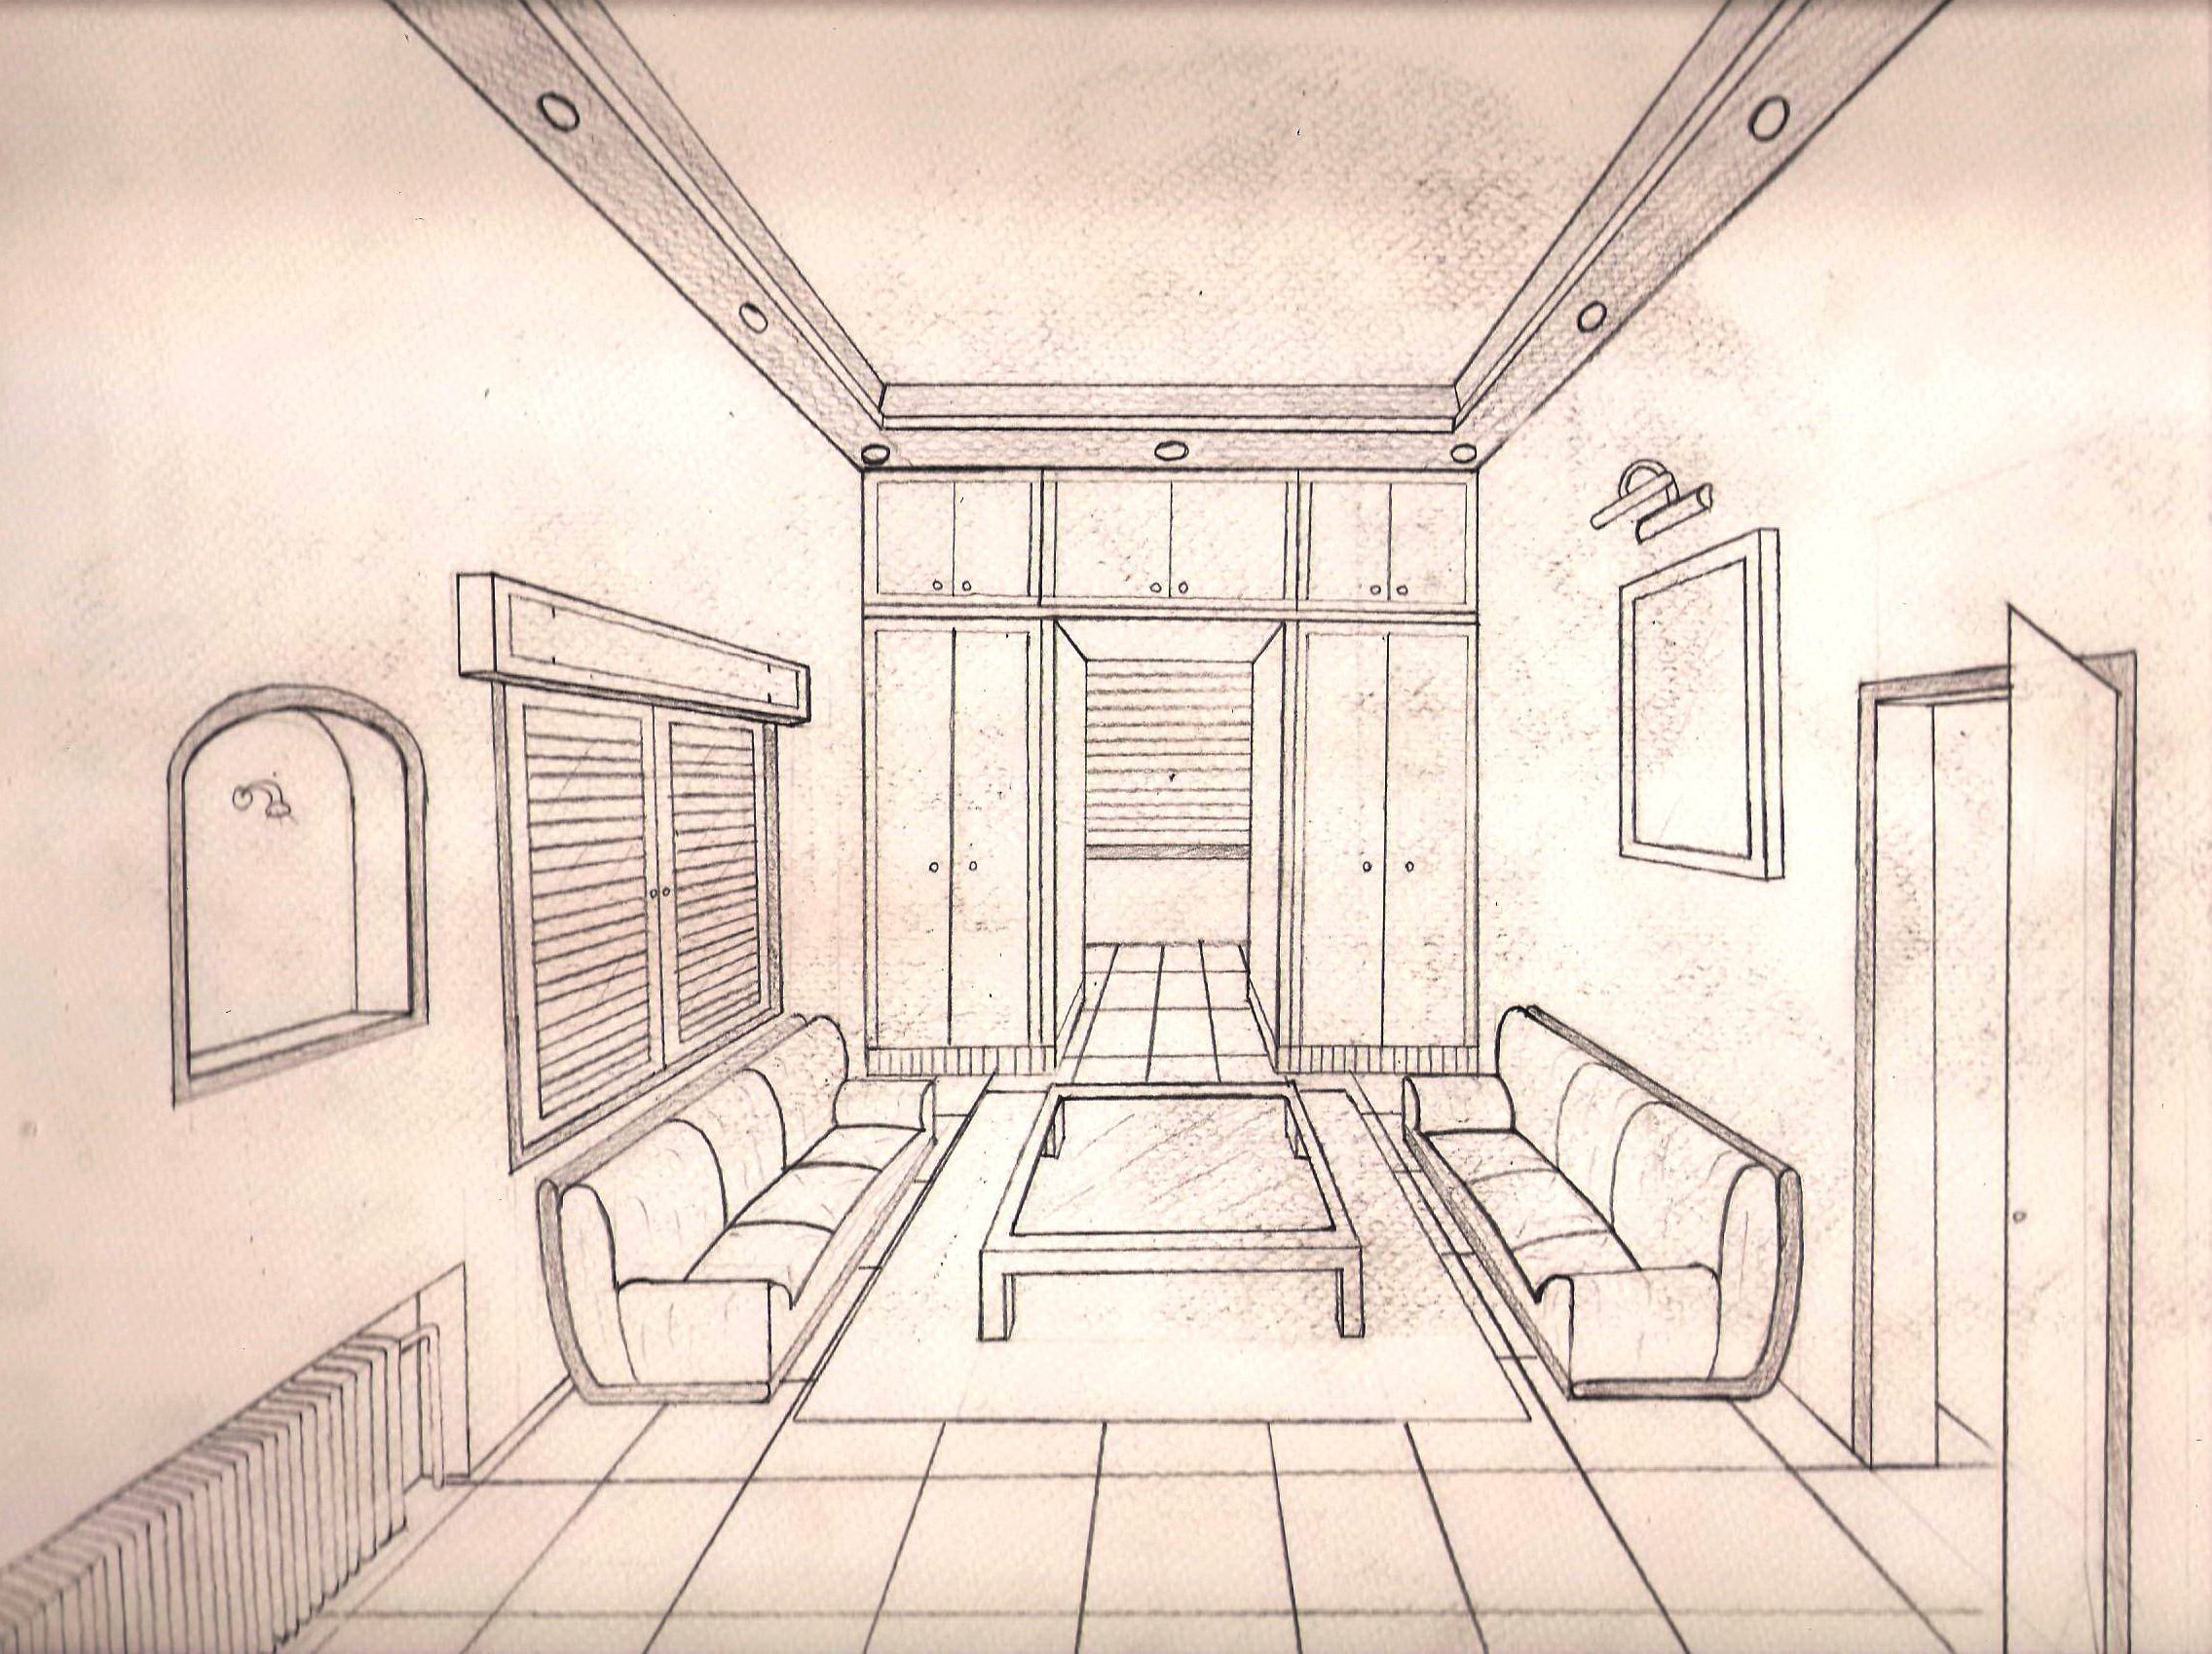 Adorable 80 interior room drawing inspiration design of for Drawing room interior